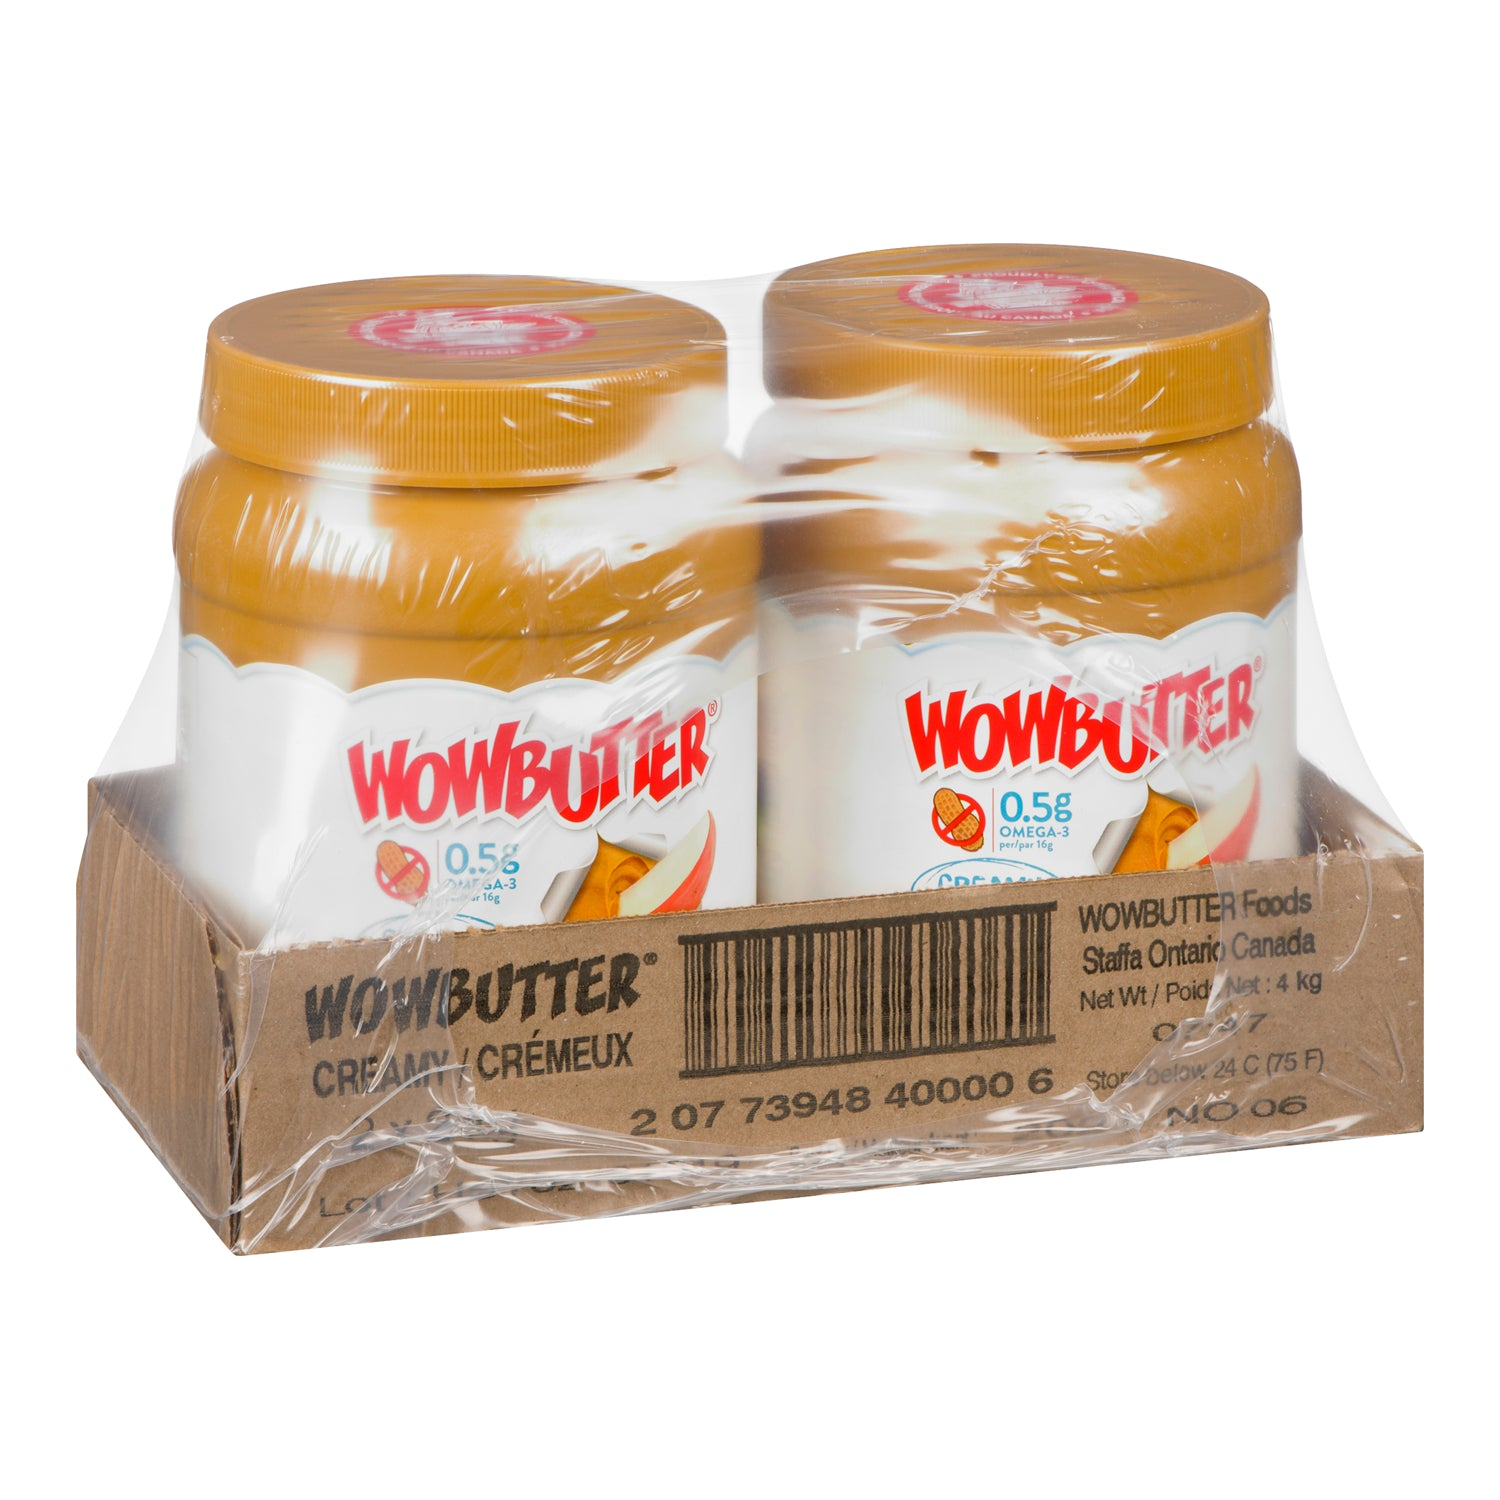 "Wow Butter Spread ""Tastes Just Like Peanut Butter"" 2 kg Peanut Free - 2 Pack [$8.50/kg]"